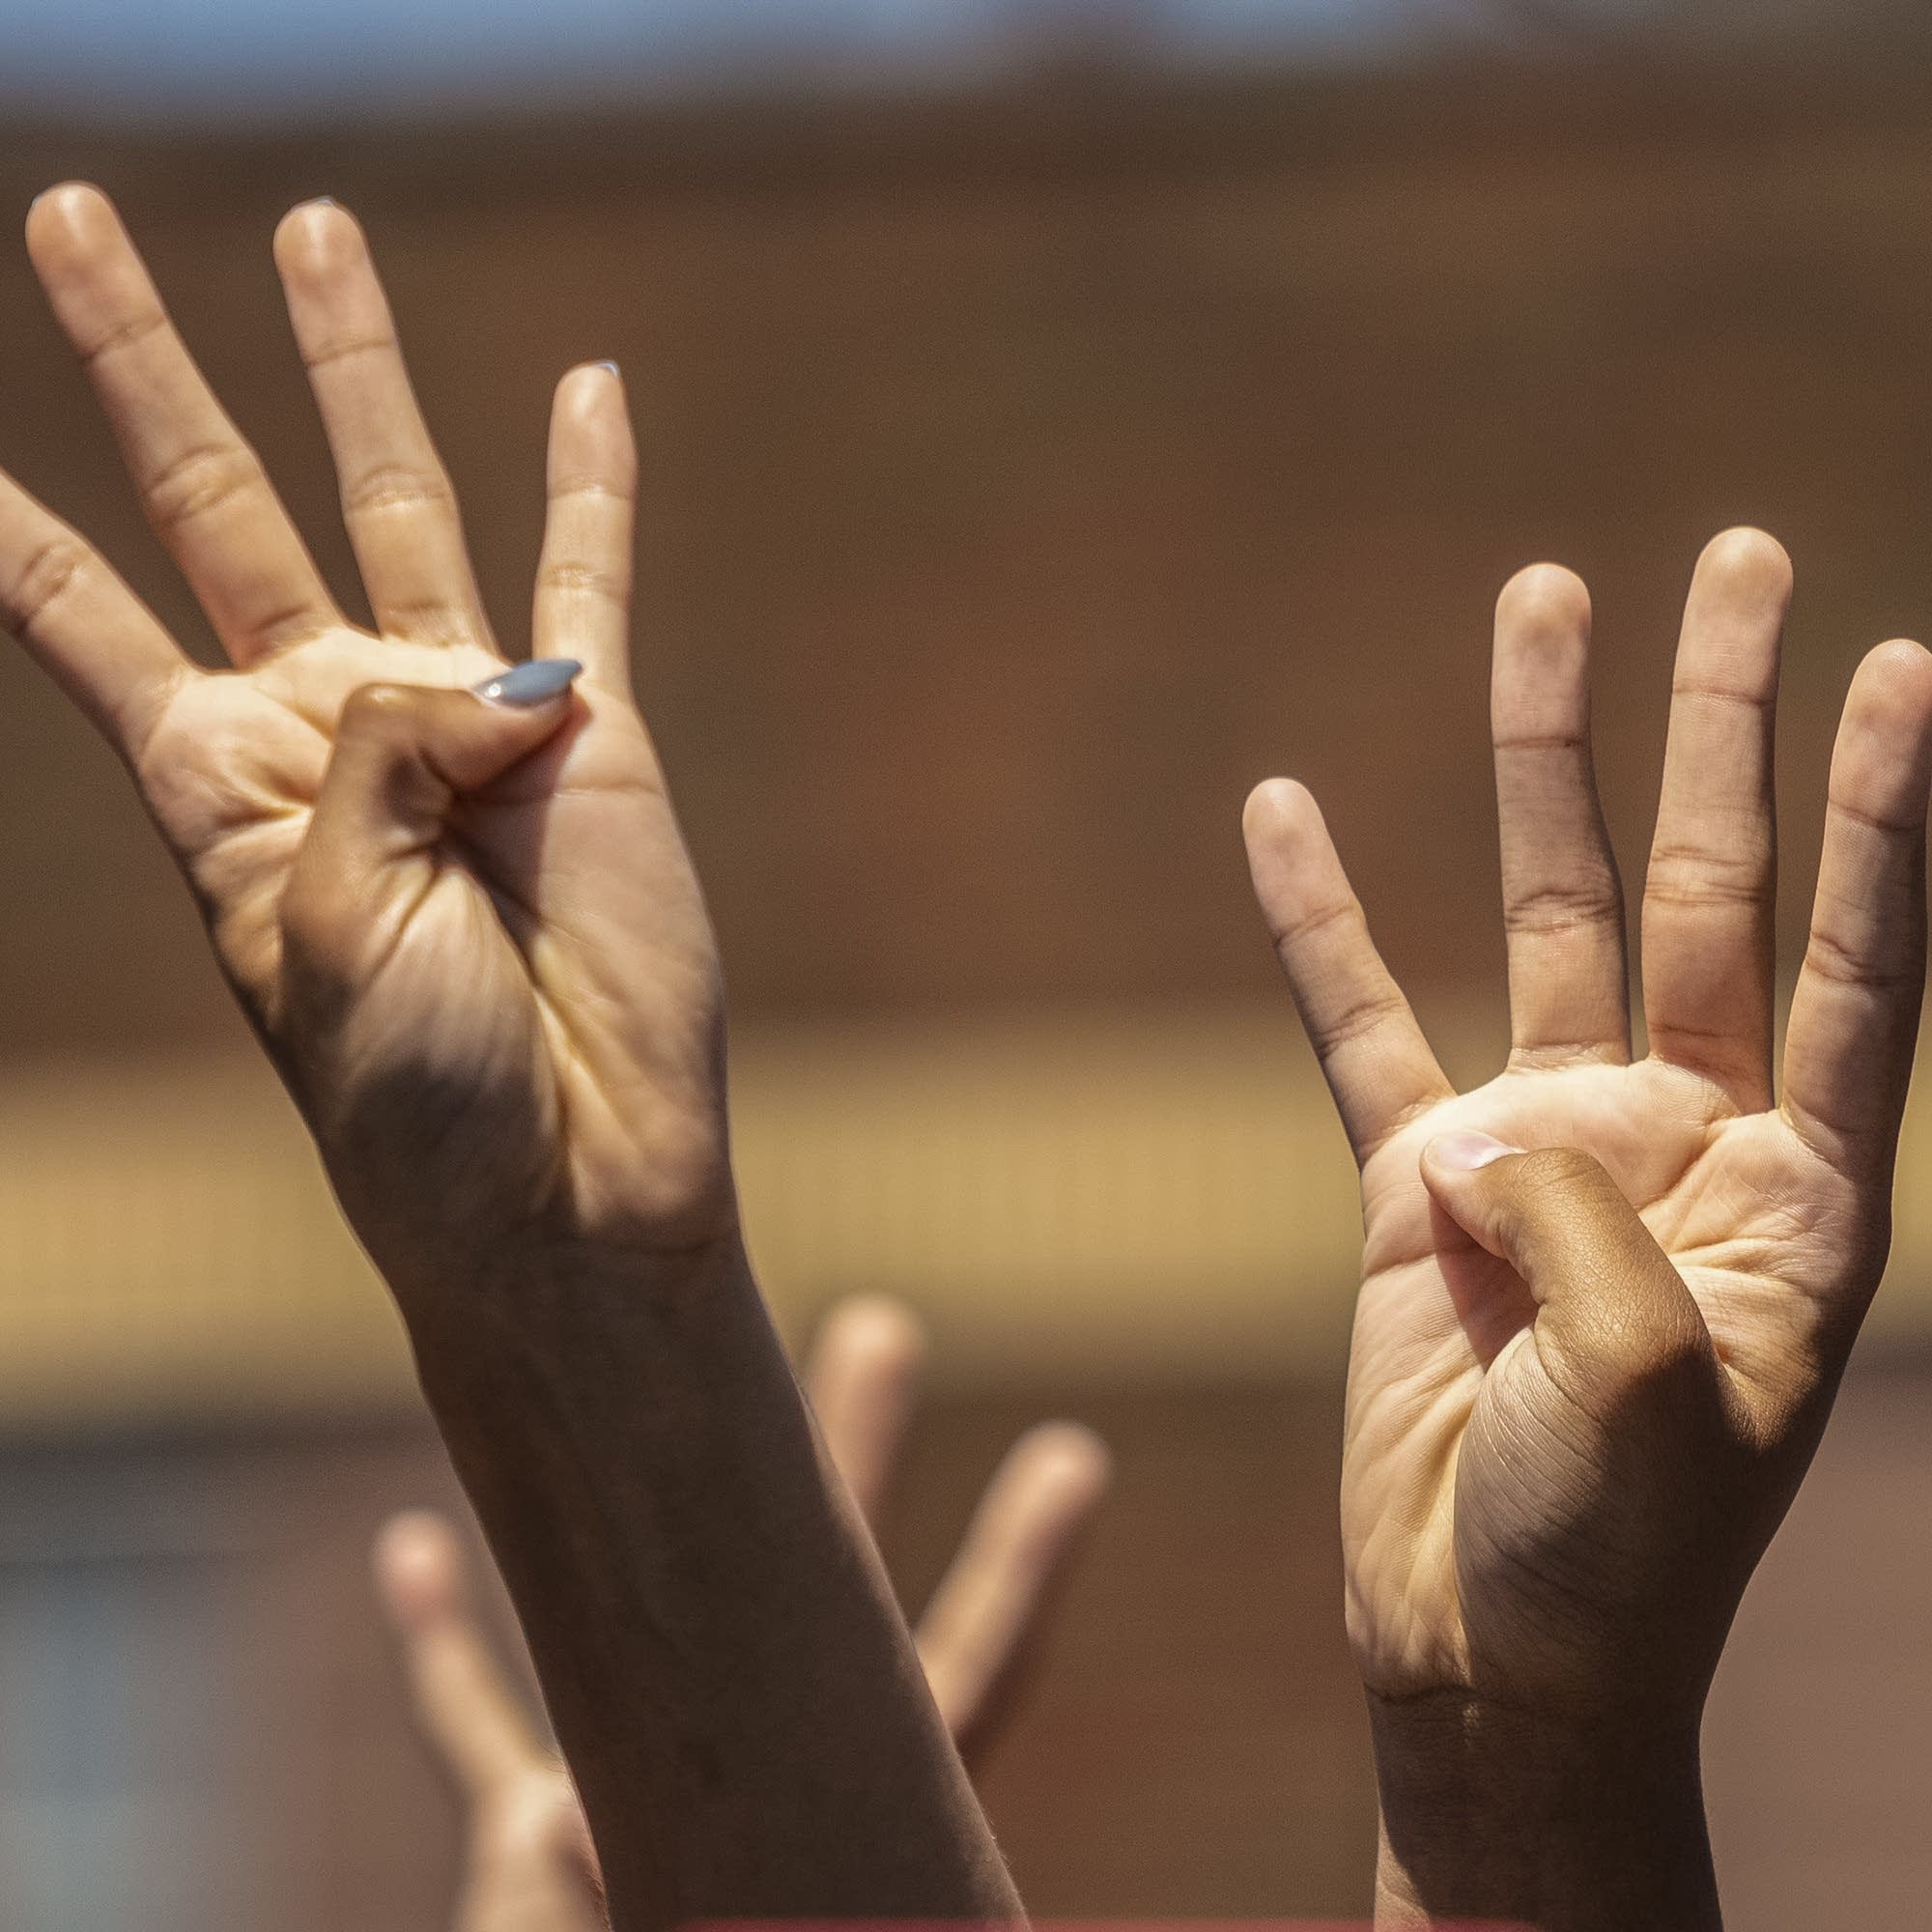 People hold up four fingers